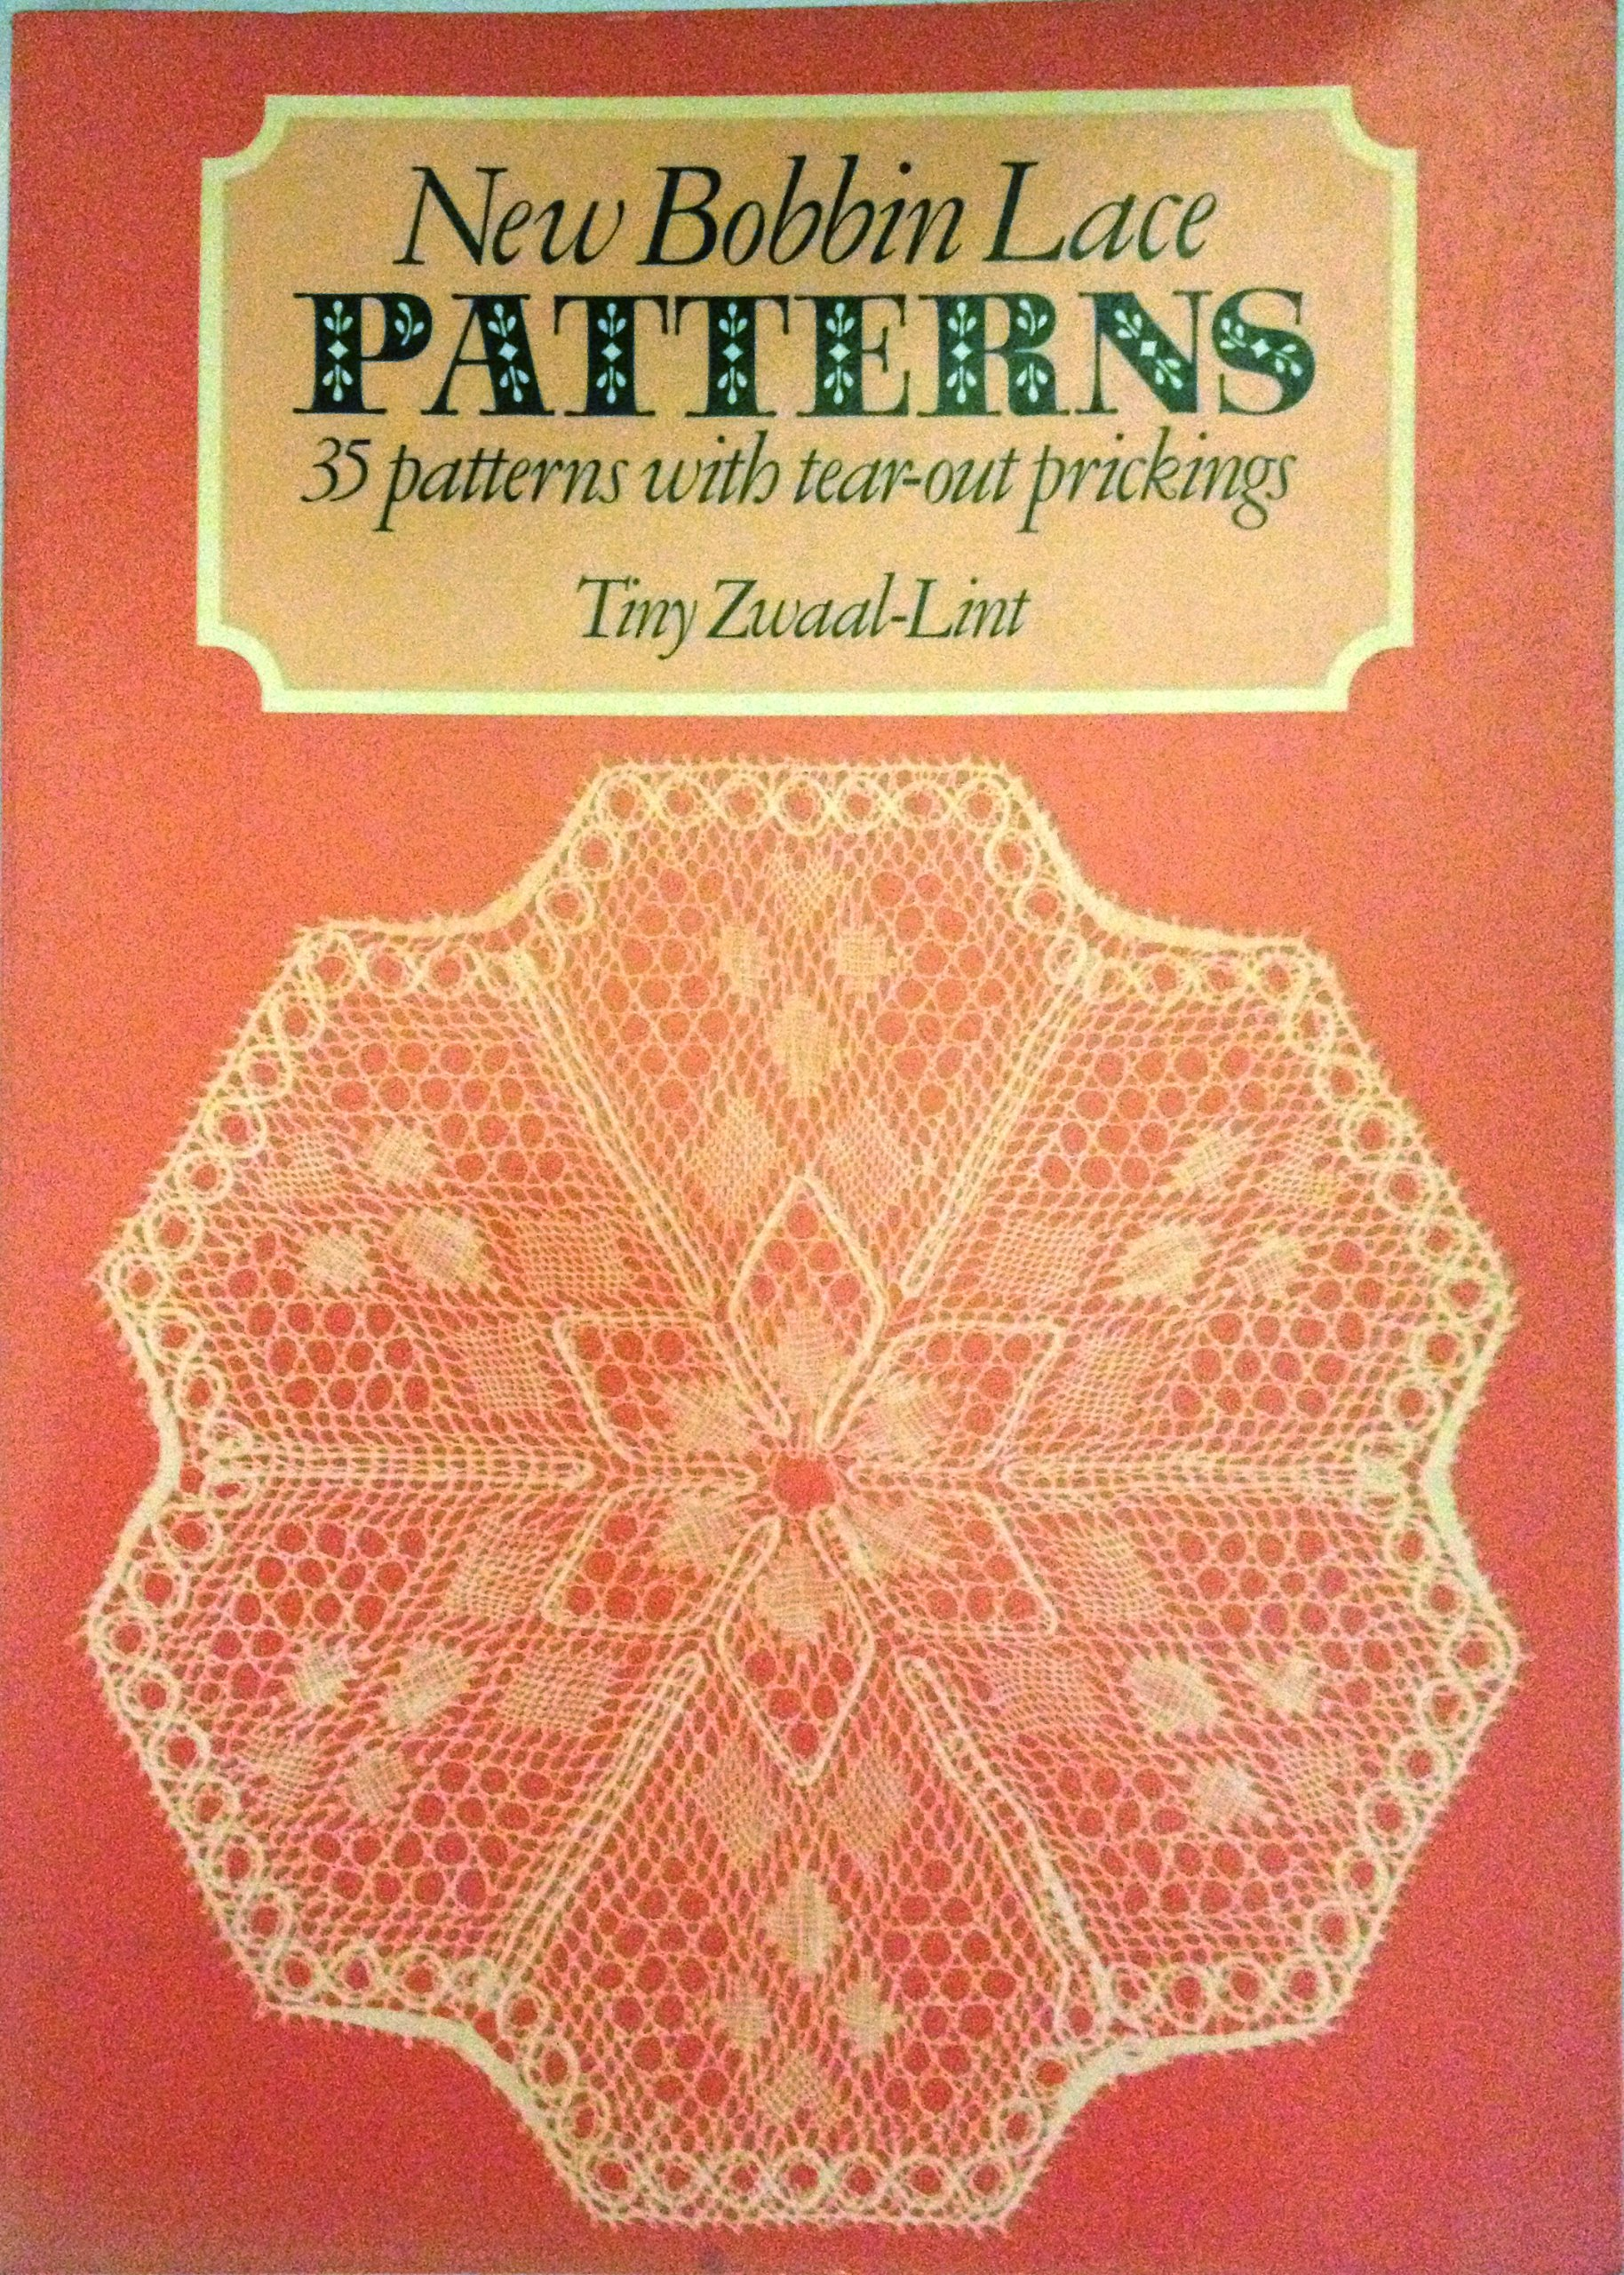 New Bobbin Lace Patterns: 35 Patterns with Tear-out Prickings (Englisch)  Taschenbuch – 1. Mai 1985